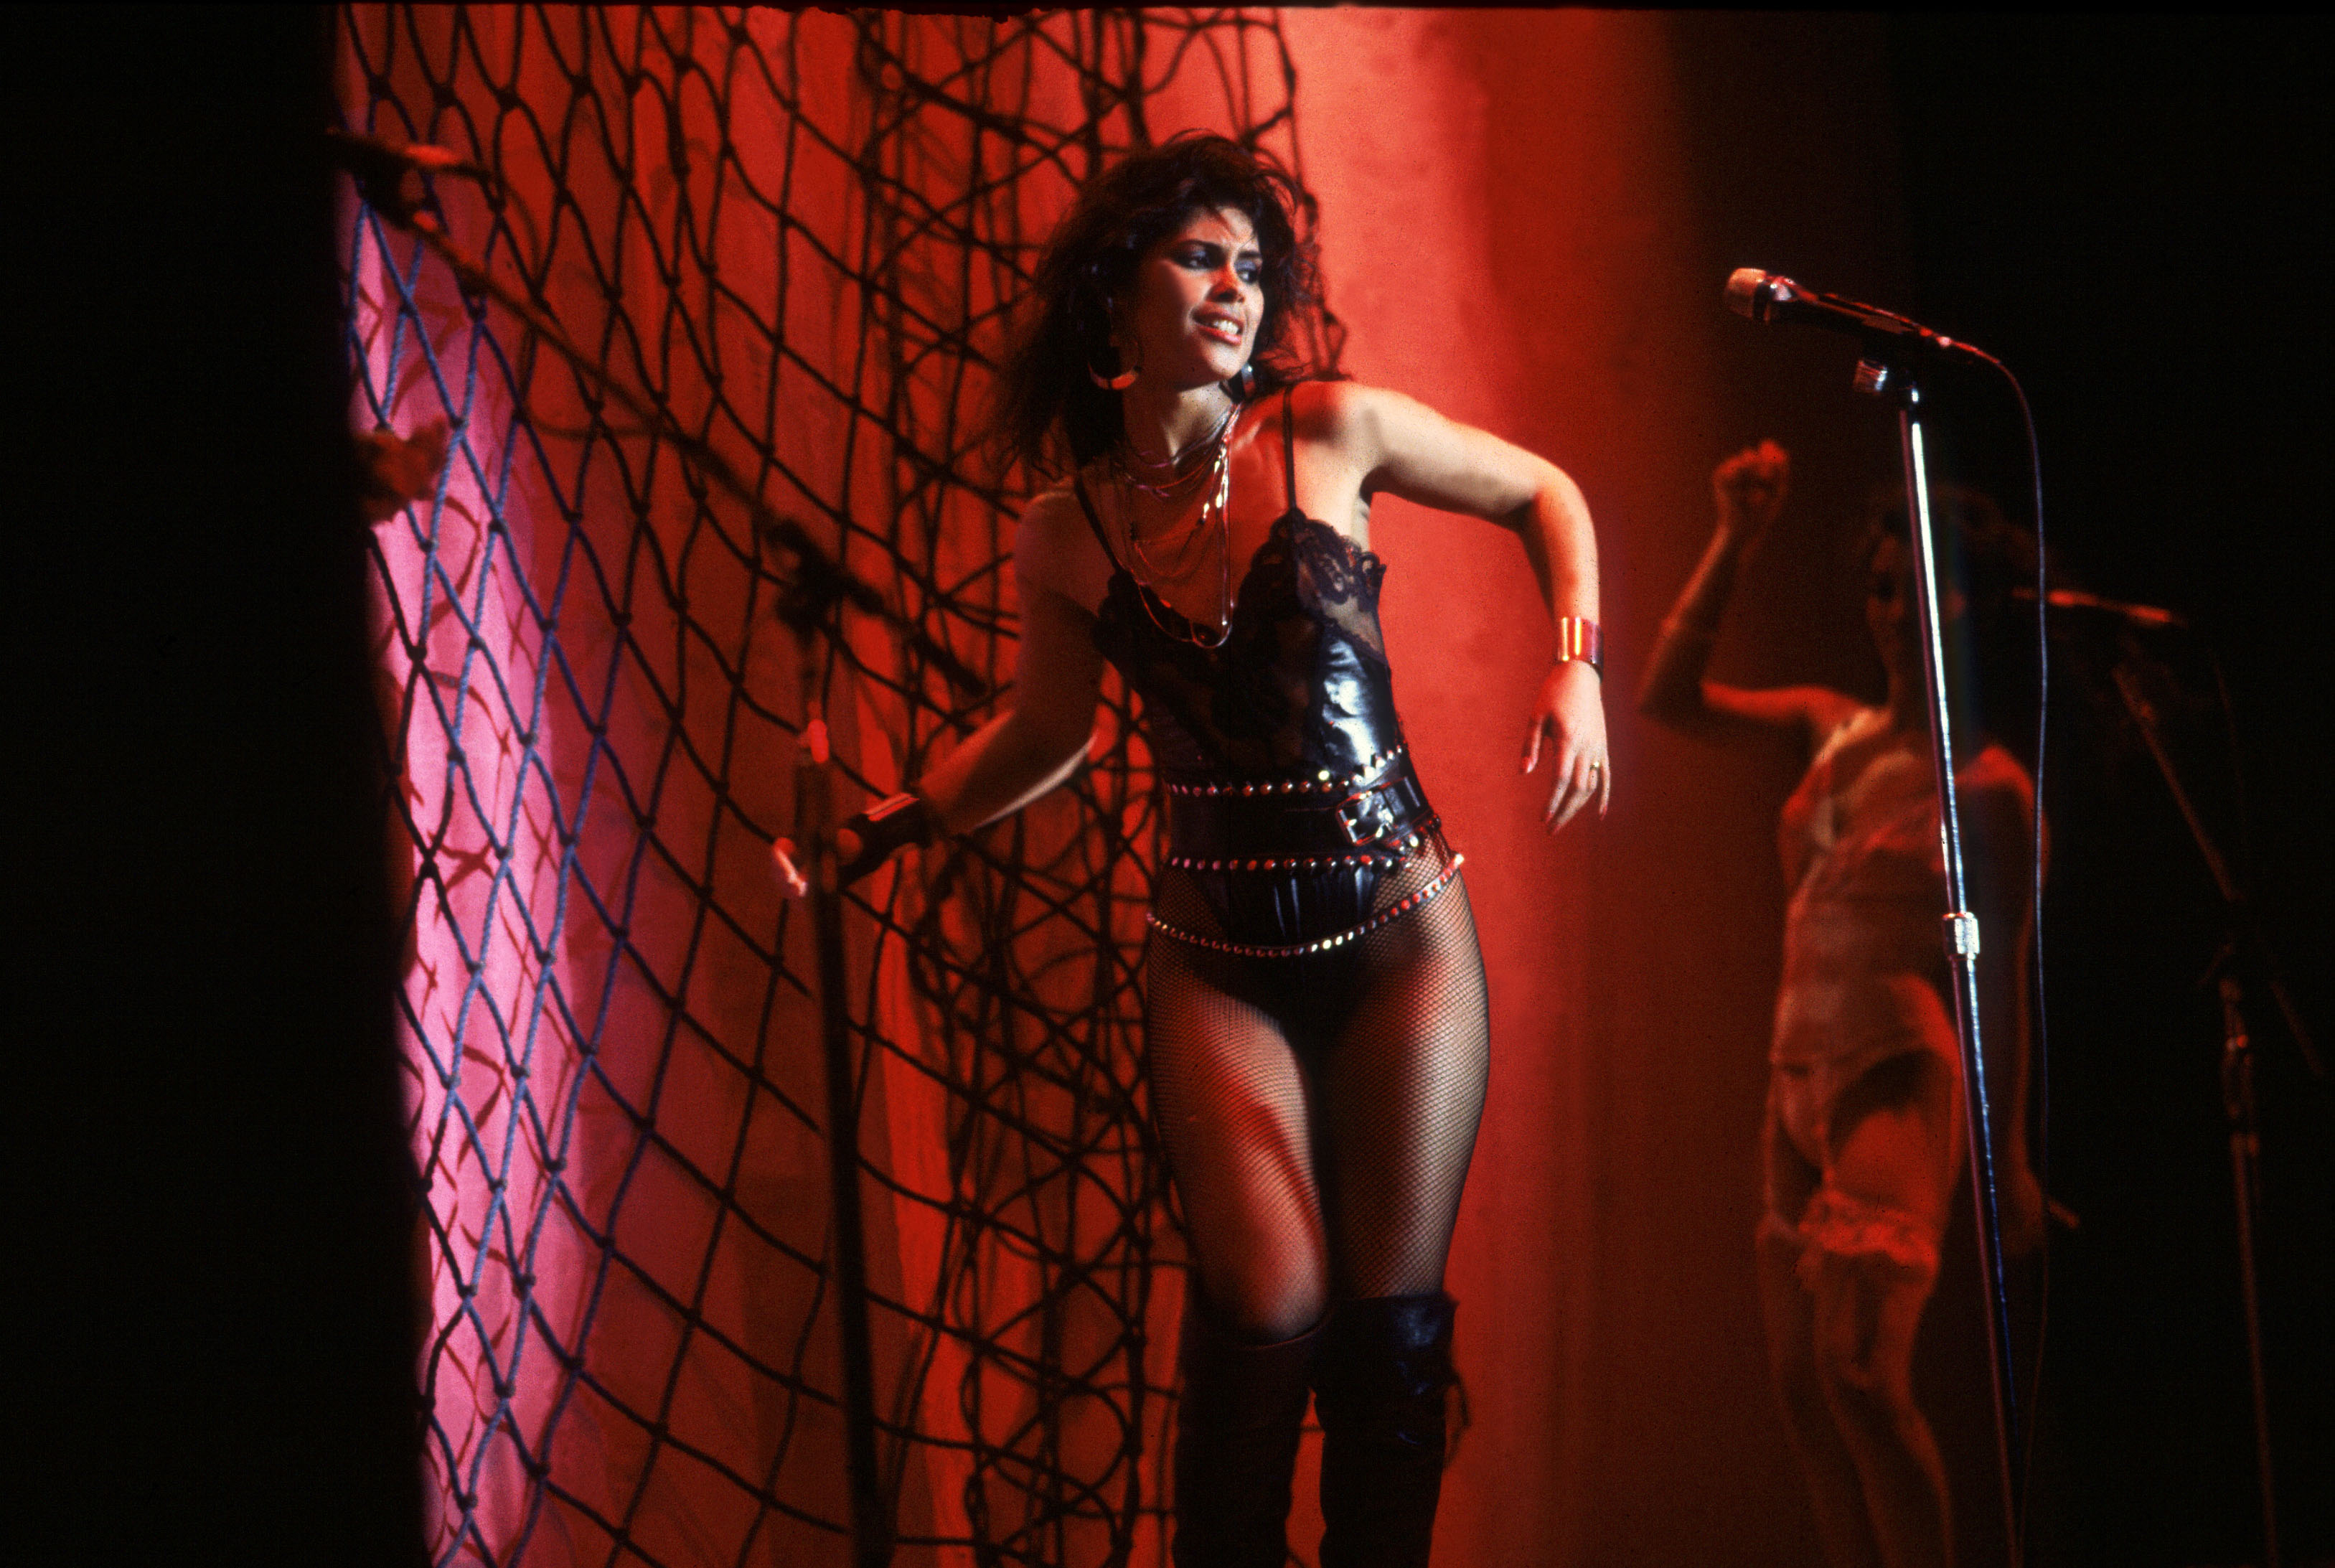 Vanity 6 on Sept. 12 1982 in Chicago, Il.